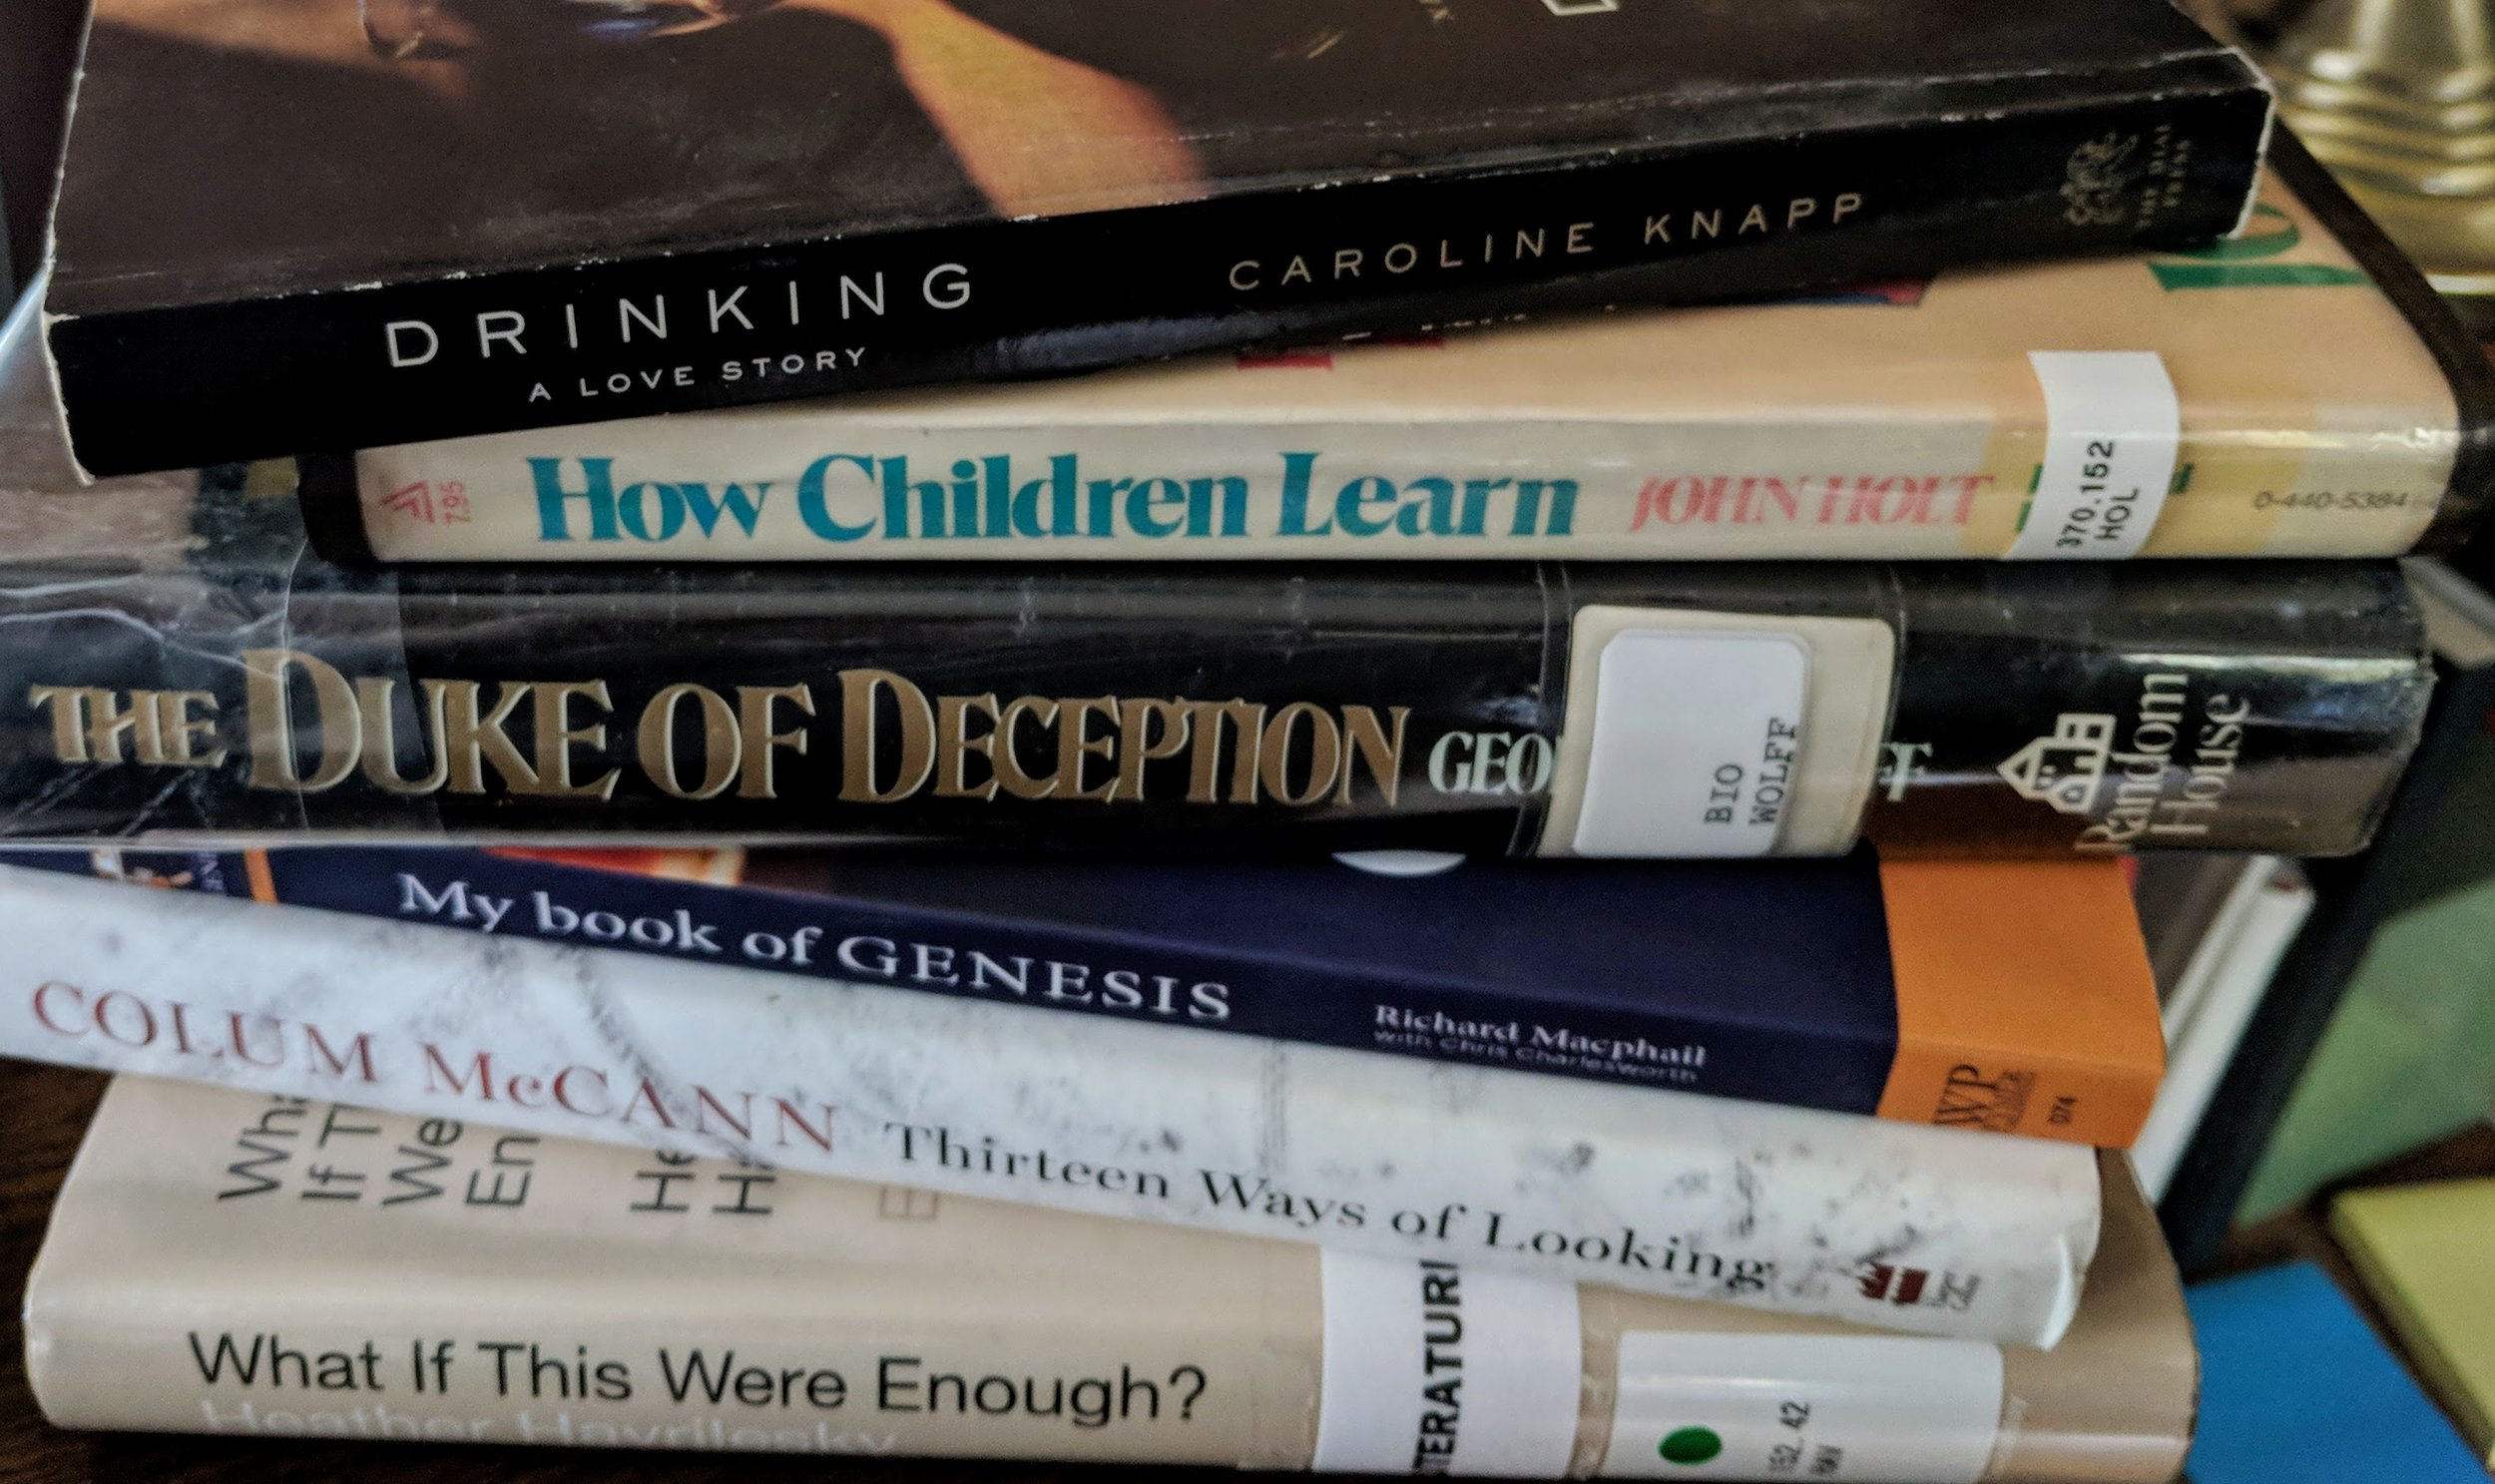 Some of the books that have come to me